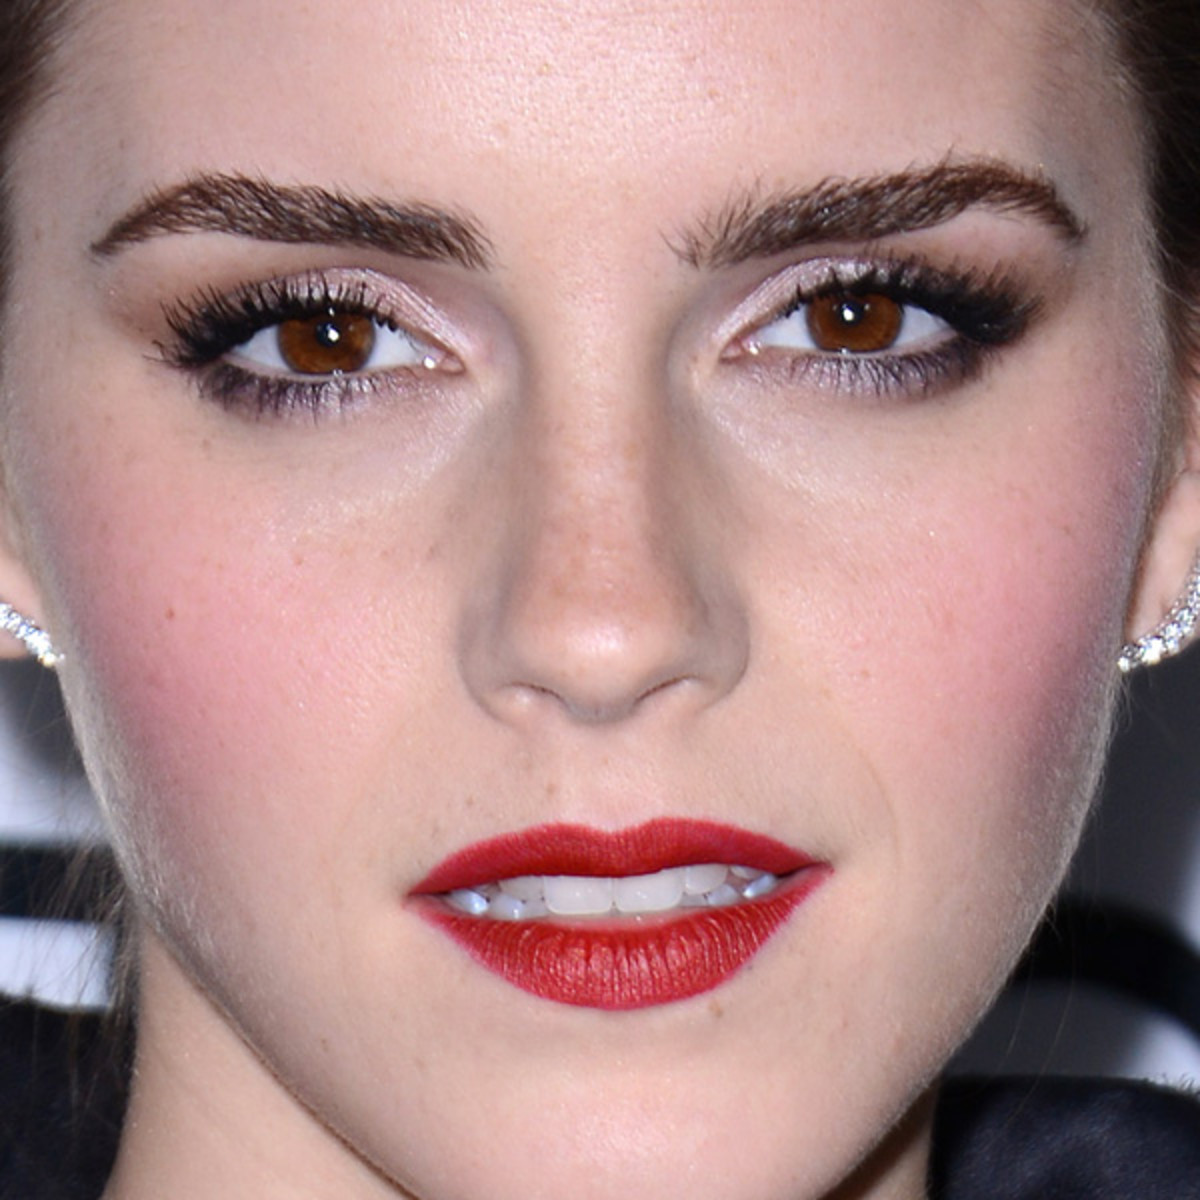 Emma Watson - The Bling Ring premiere, LA, June 2013 - close-up